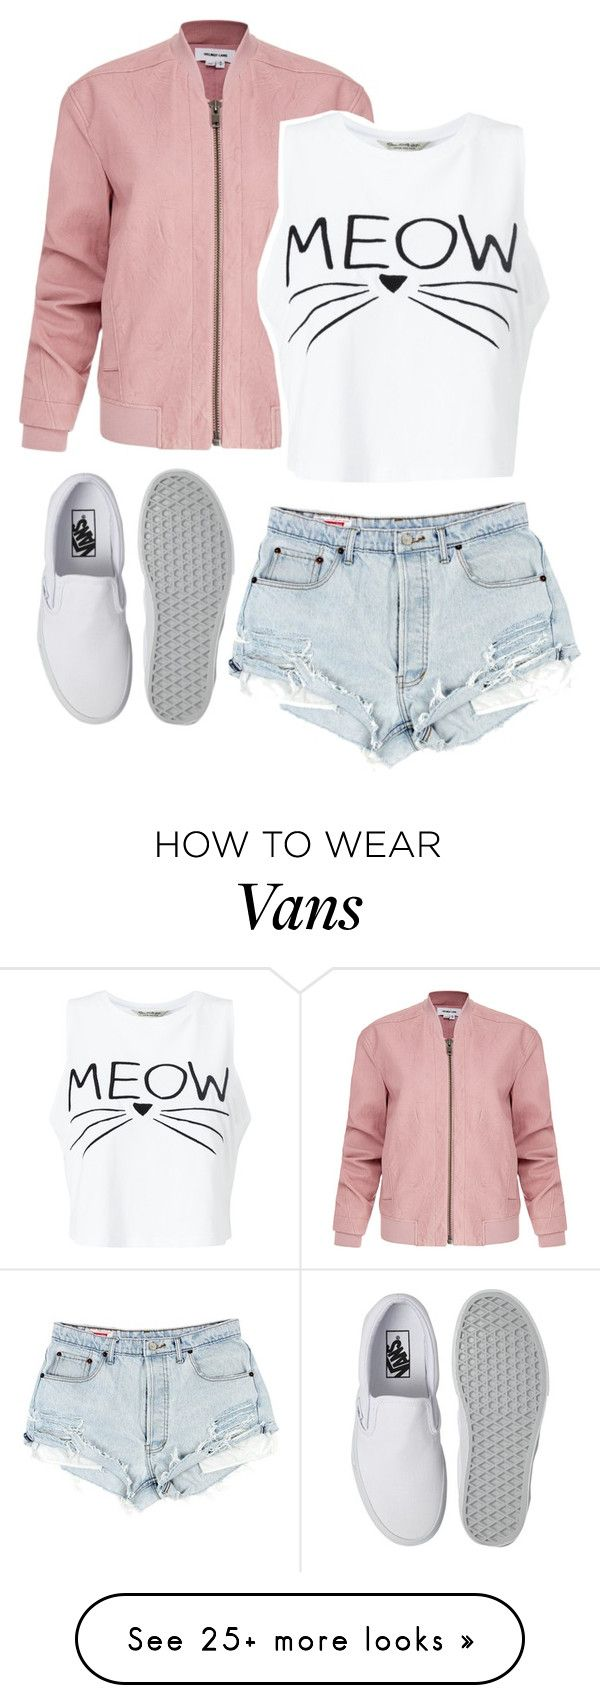 """""""Untitled #222"""" by dianav8 on Polyvore featuring Helmut Lang, Miss Selfridge and Vans"""